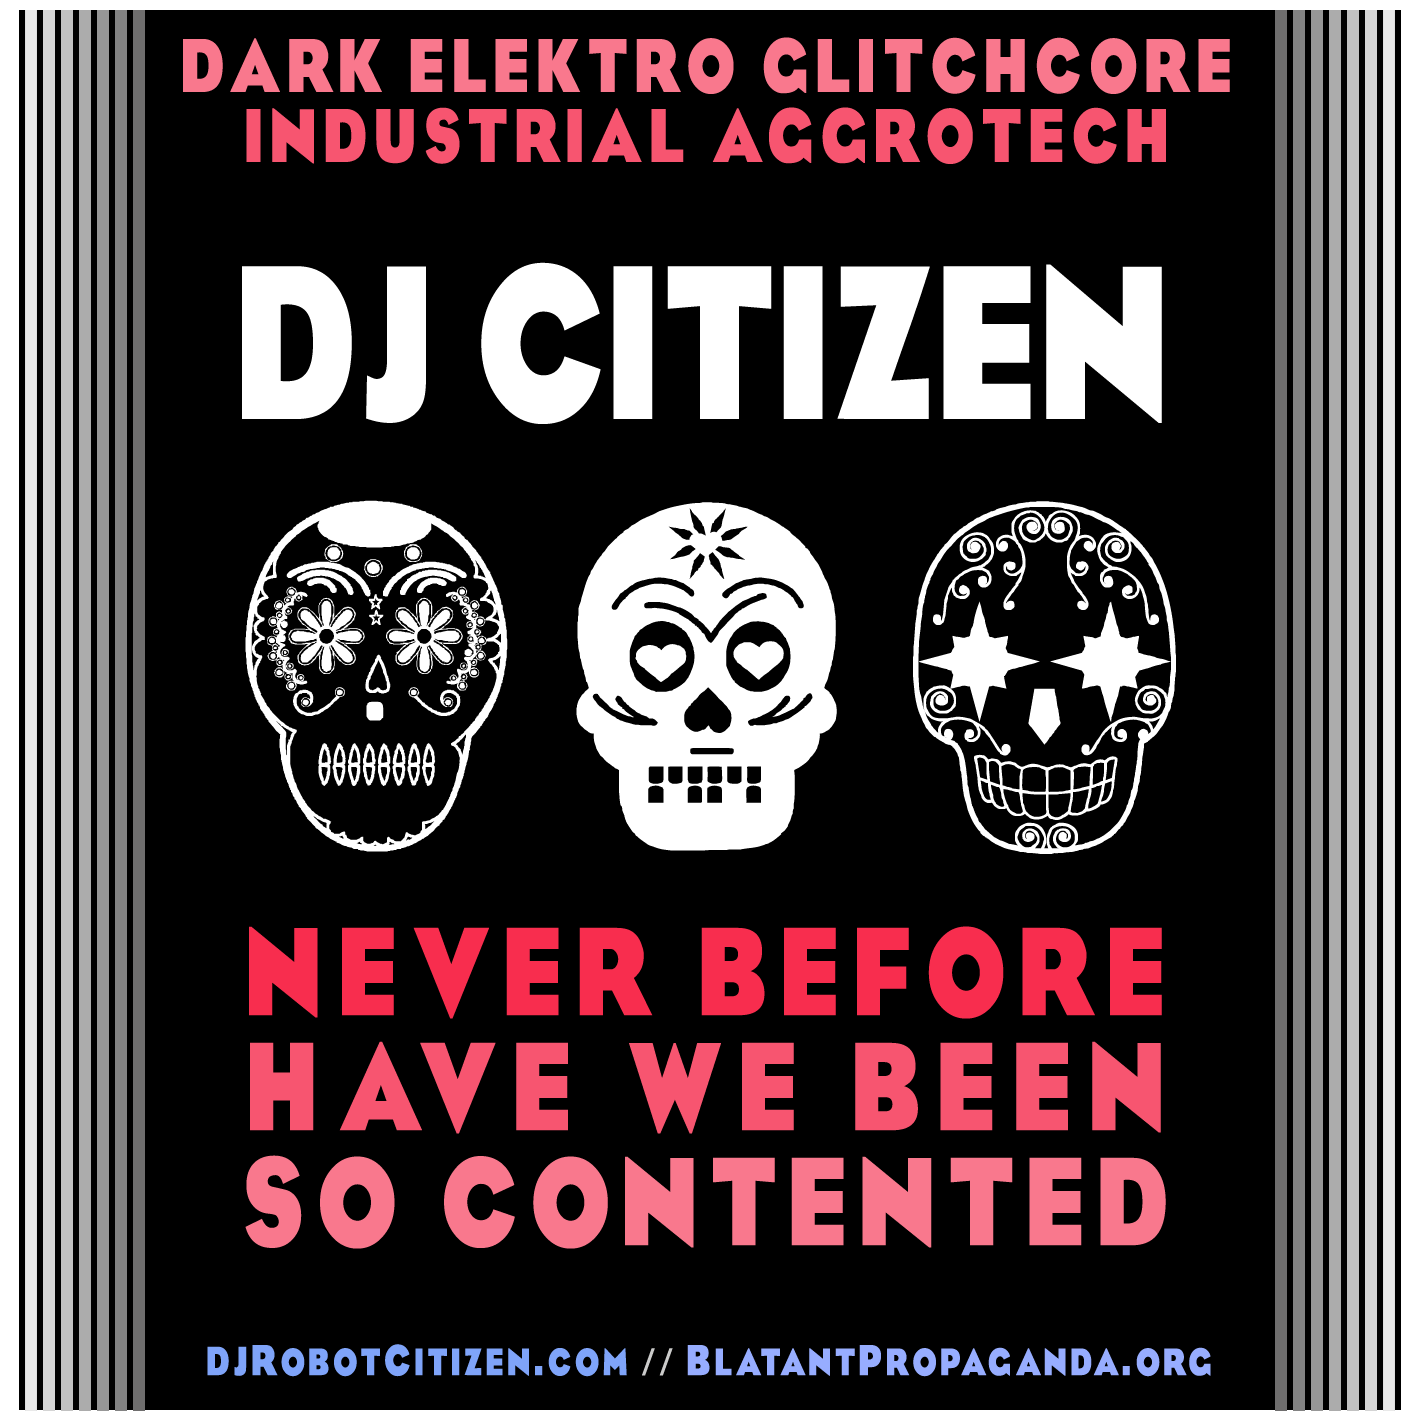 Cover Art for song by DJ Citizen; released in early 2000s